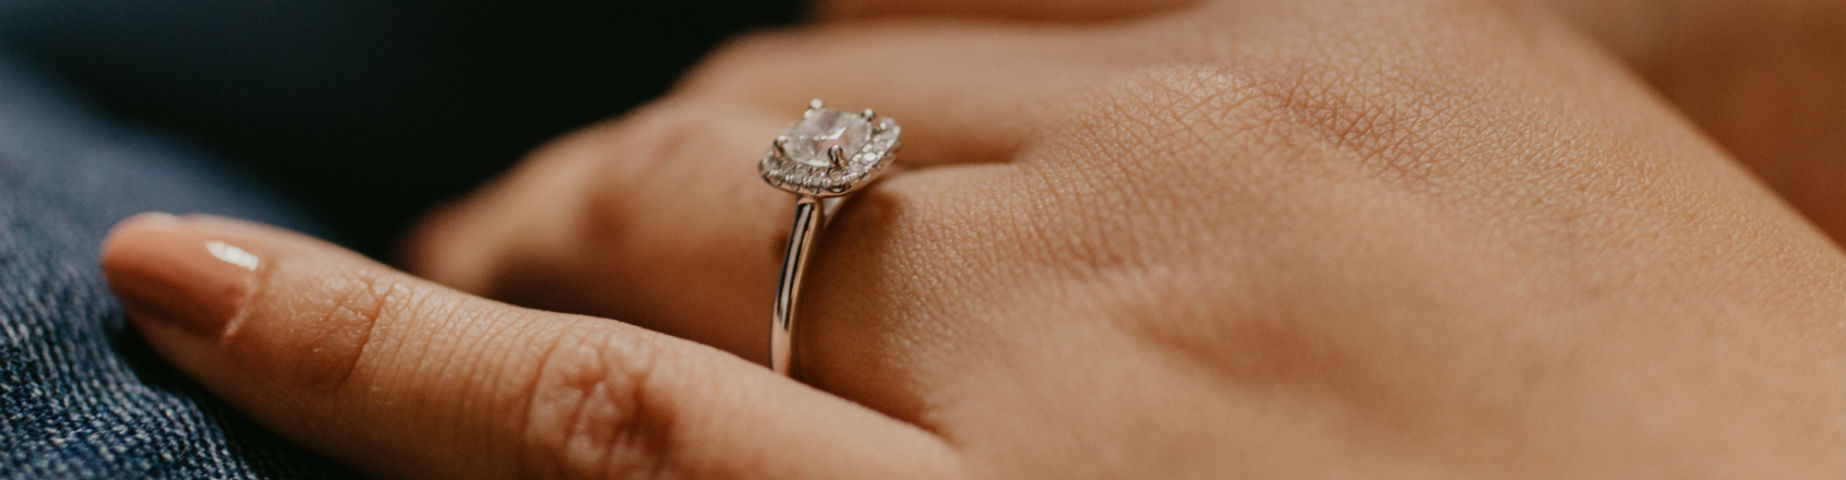 woman's hand wearing halo engagement ring